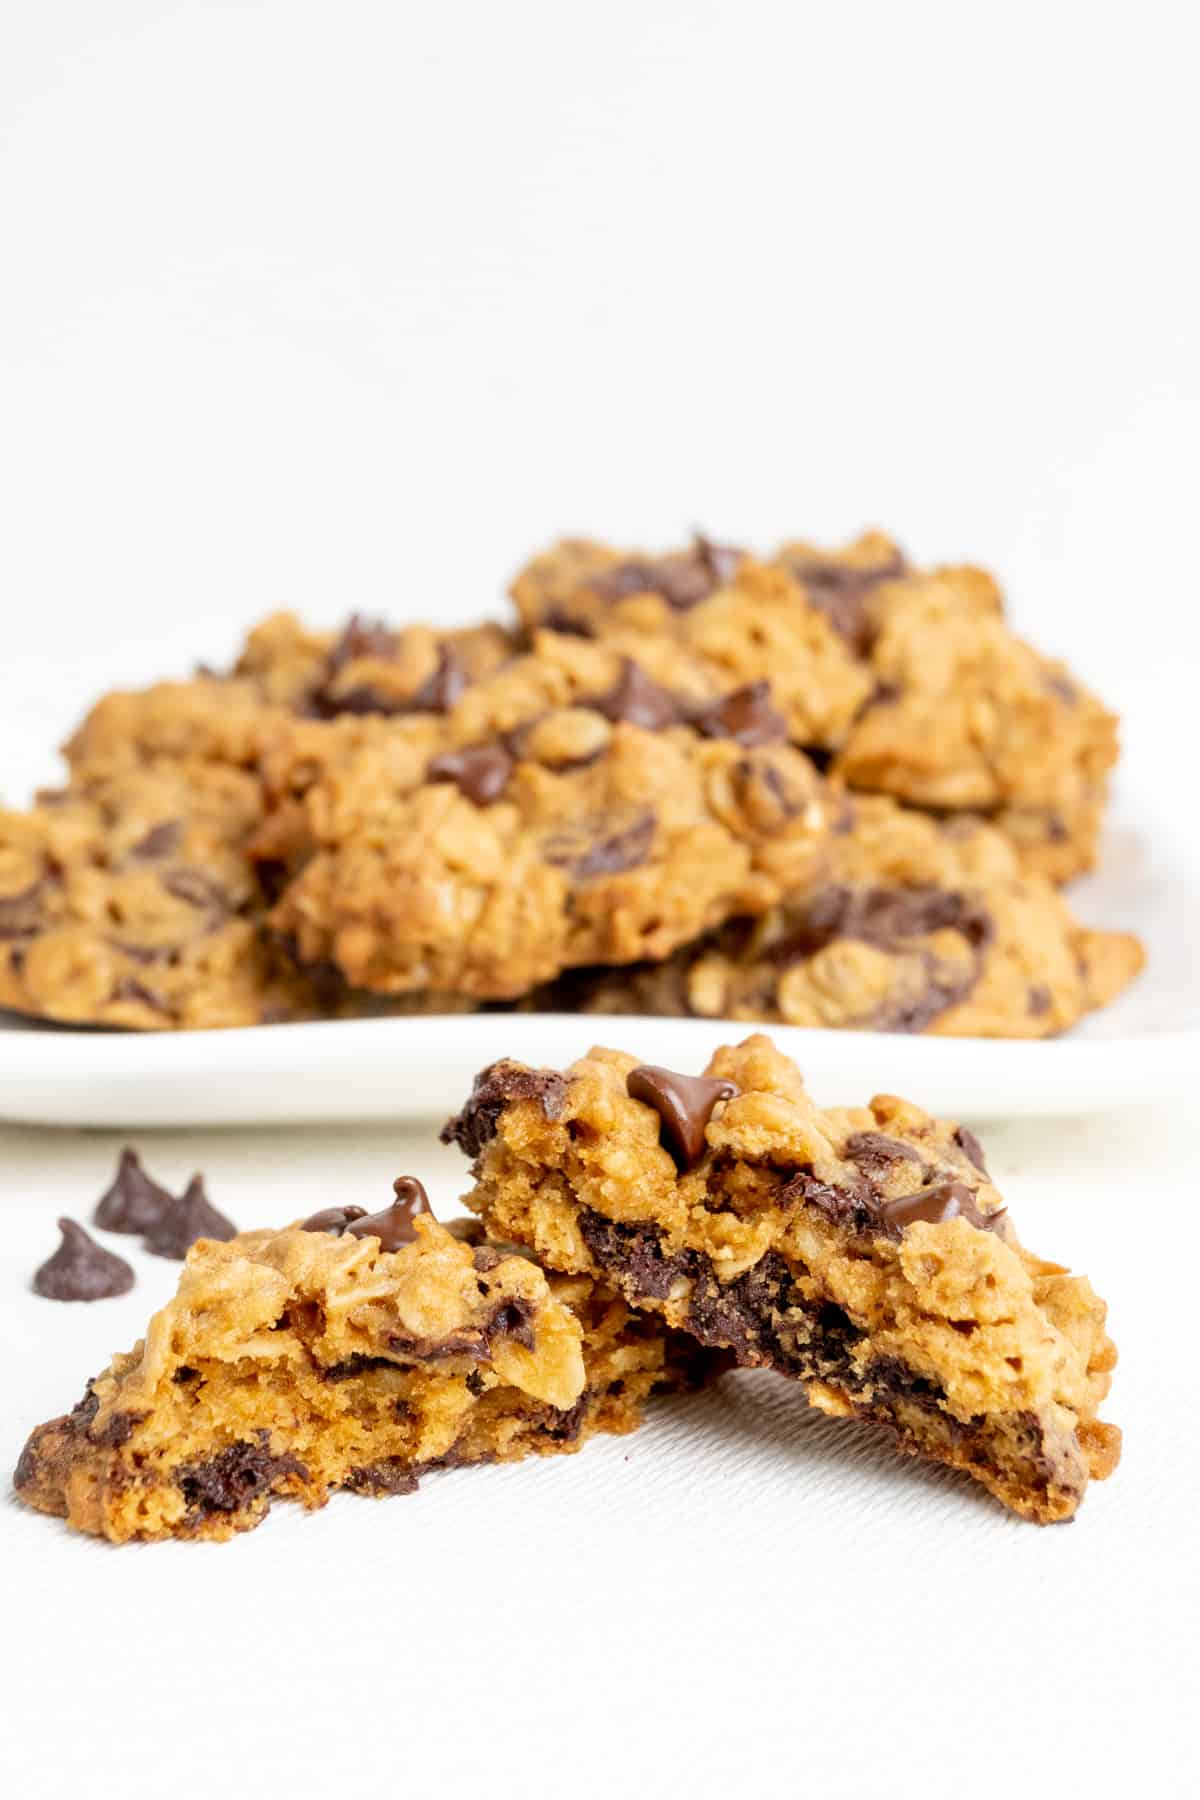 A cookie snapped in two revealing the flaky texture and chunks of chocolate inside.